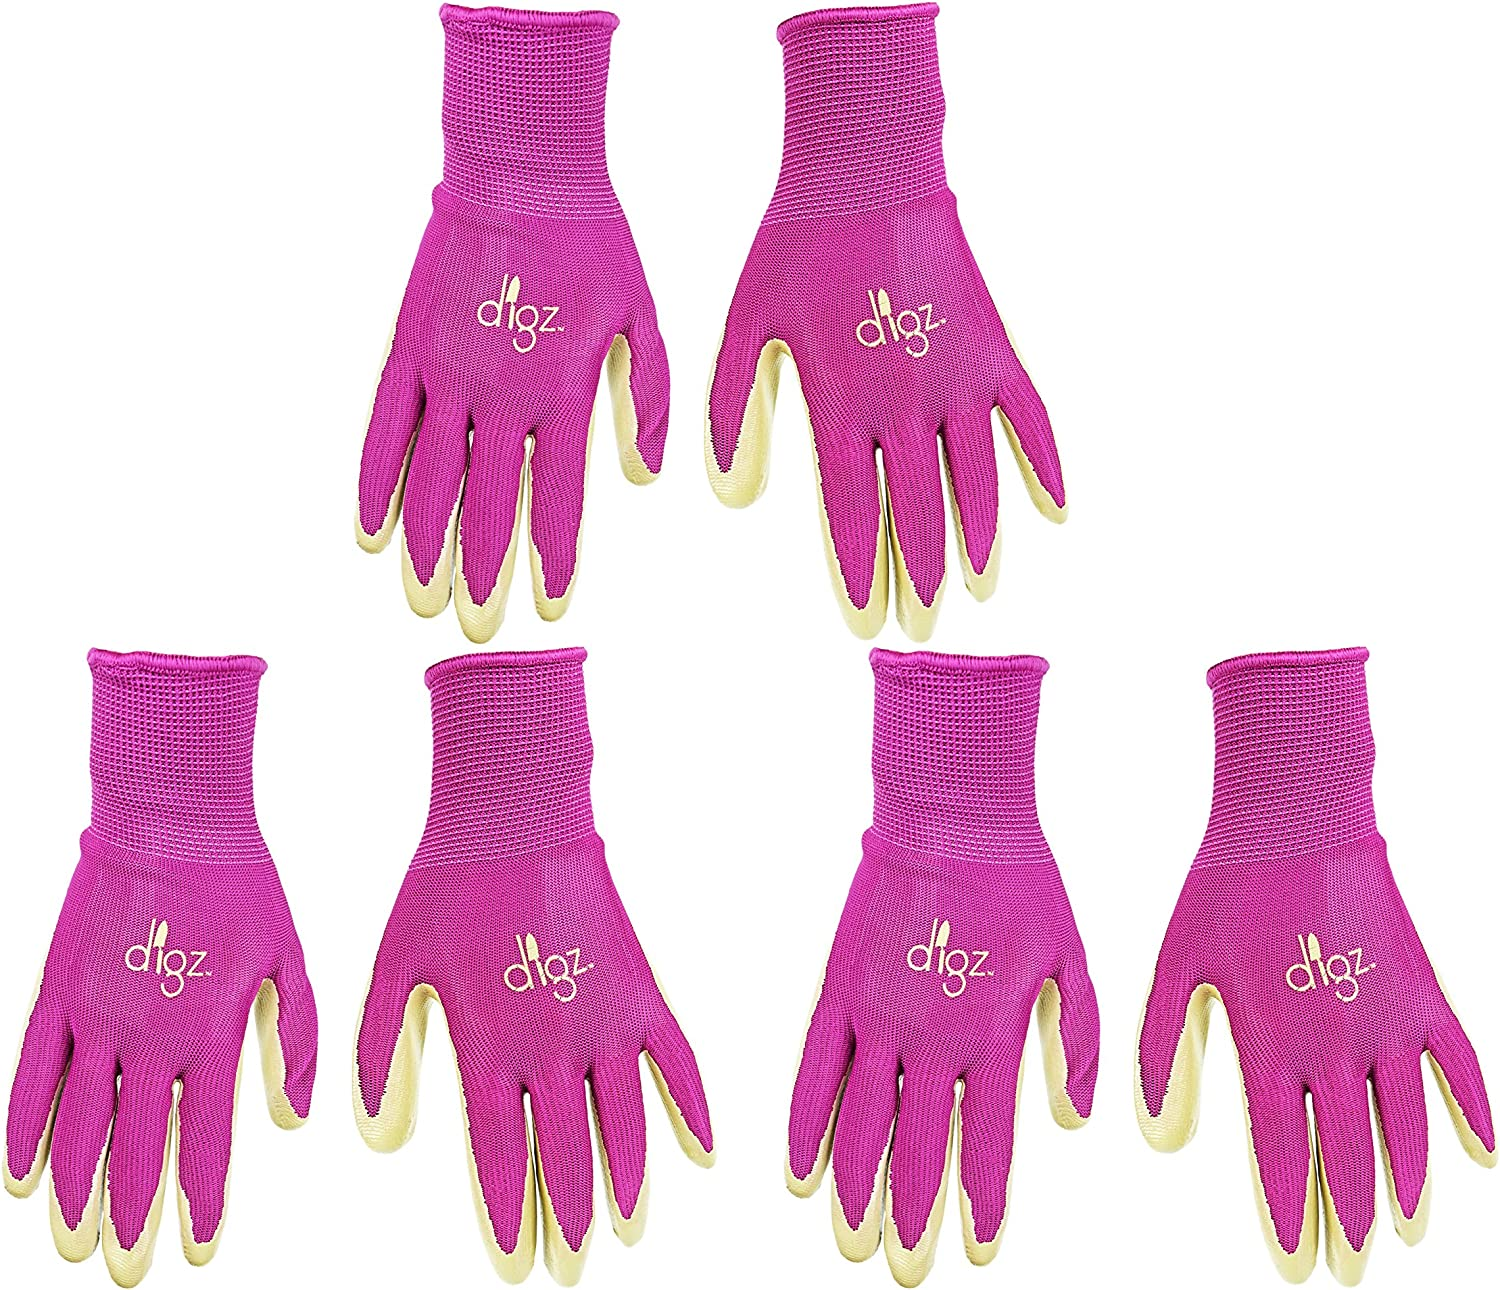 Set of 3 Long Cuff Digz Grip Planter Women's Small Synthetic Leather Palm All Purpose Work/Garden Gloves - Comfort Fit!